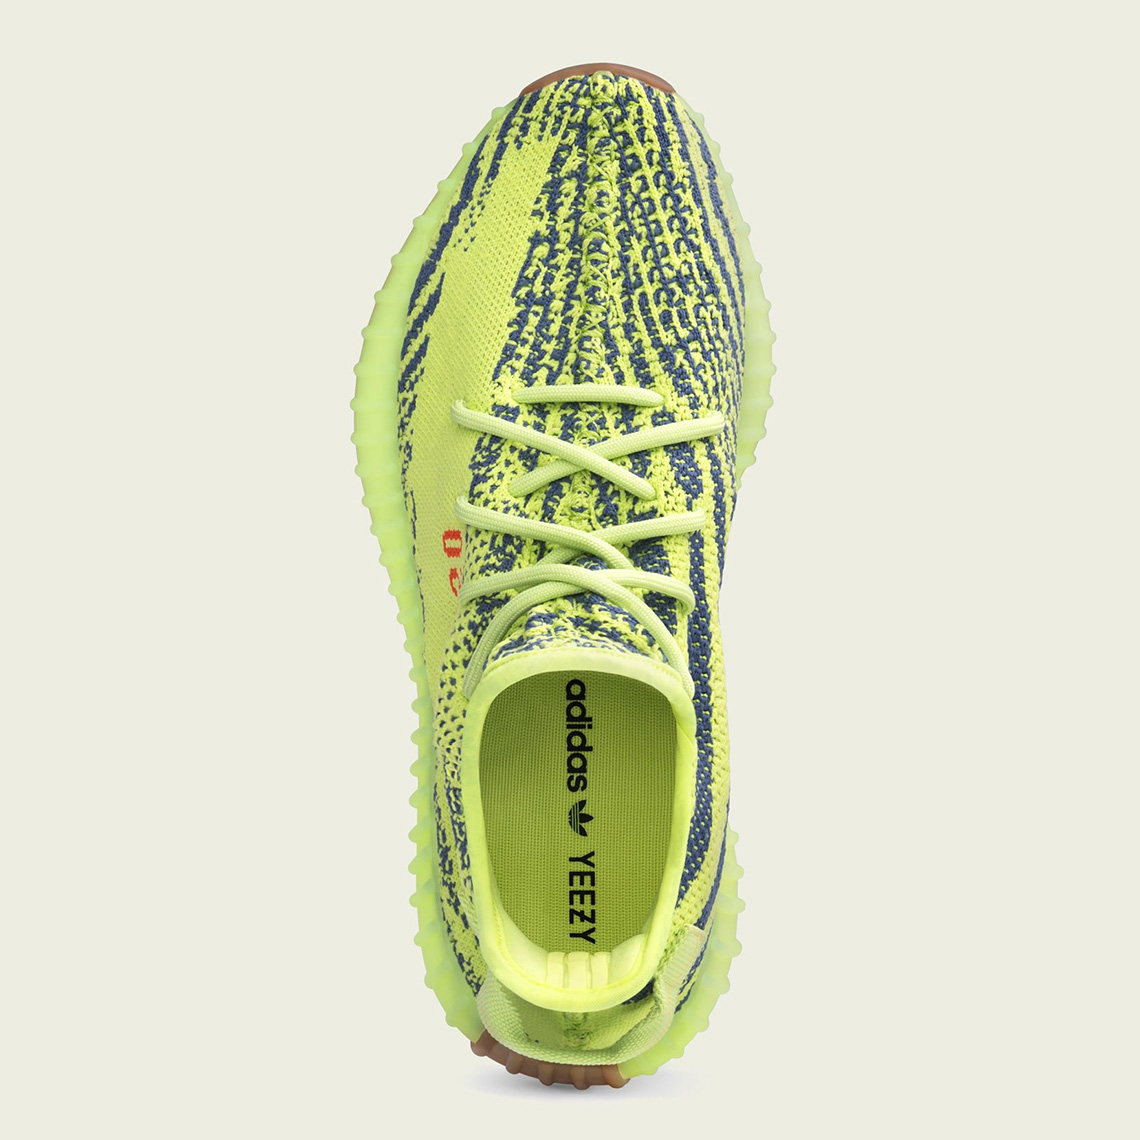 aa1bff0fd952 adidas Yeezy Boost 350 v2. Release Date  December 15th